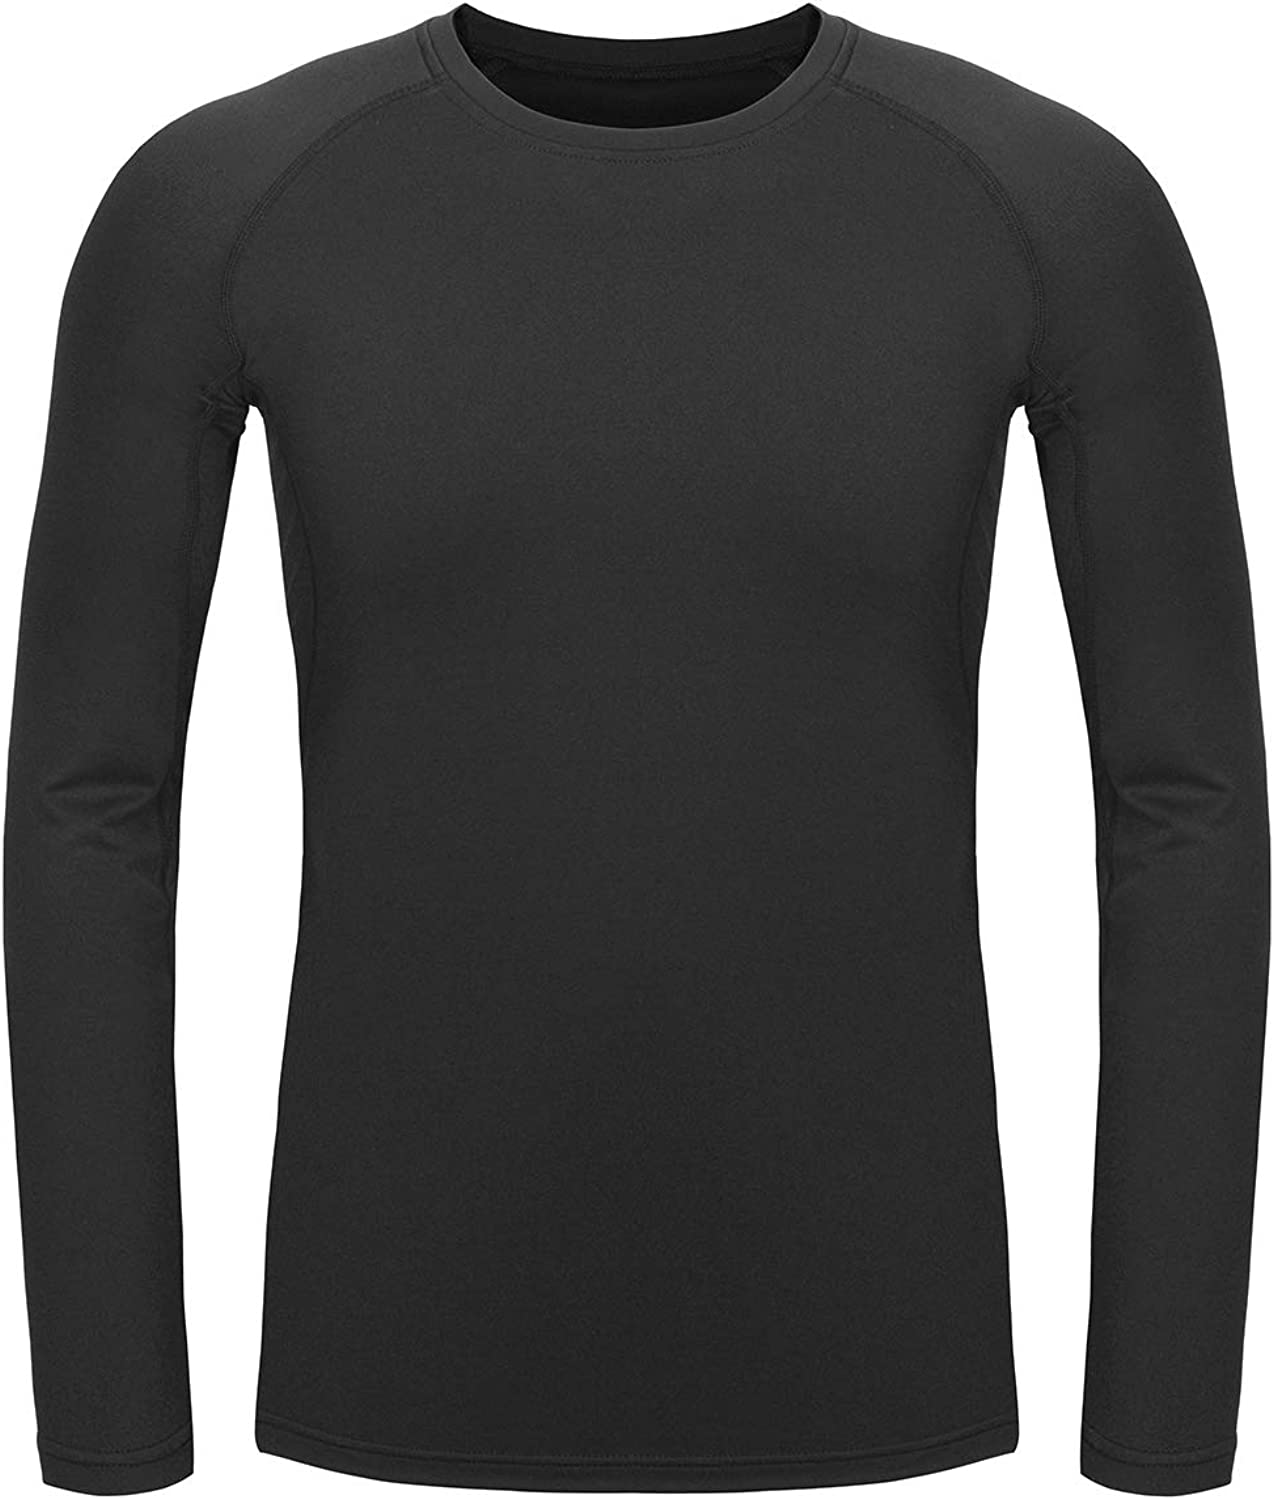 TAIBID Youth Boys' Compression Thermal Shirt Fleece Base Layer Long Sleeve Soccer Baseball Top, Size S - XL: Clothing